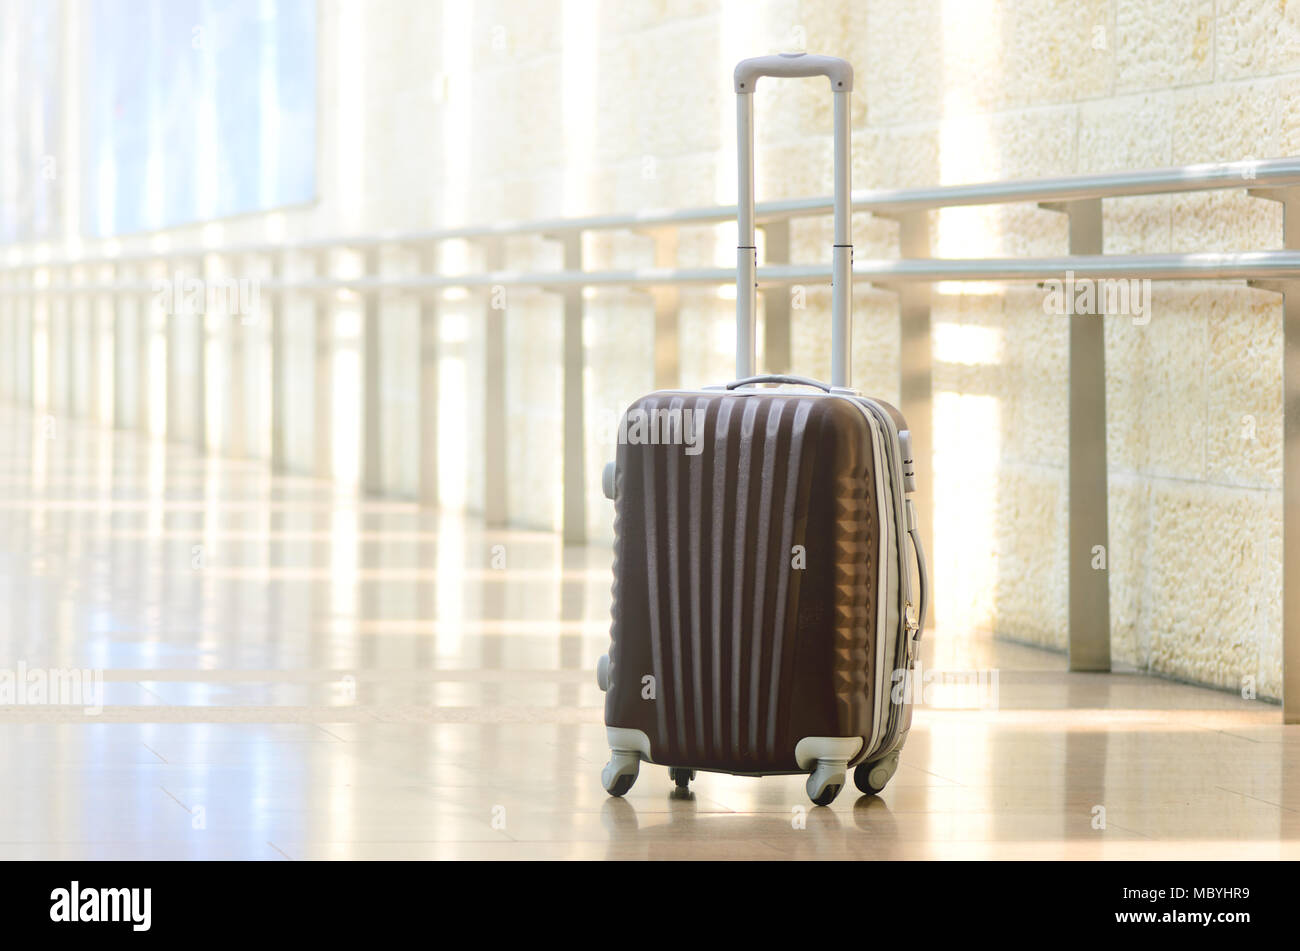 Packed travel suitcase, airport. Summer holiday and vacation concept. Traveler baggage, brown luggage in empty hall interior. Copy space - Stock Image